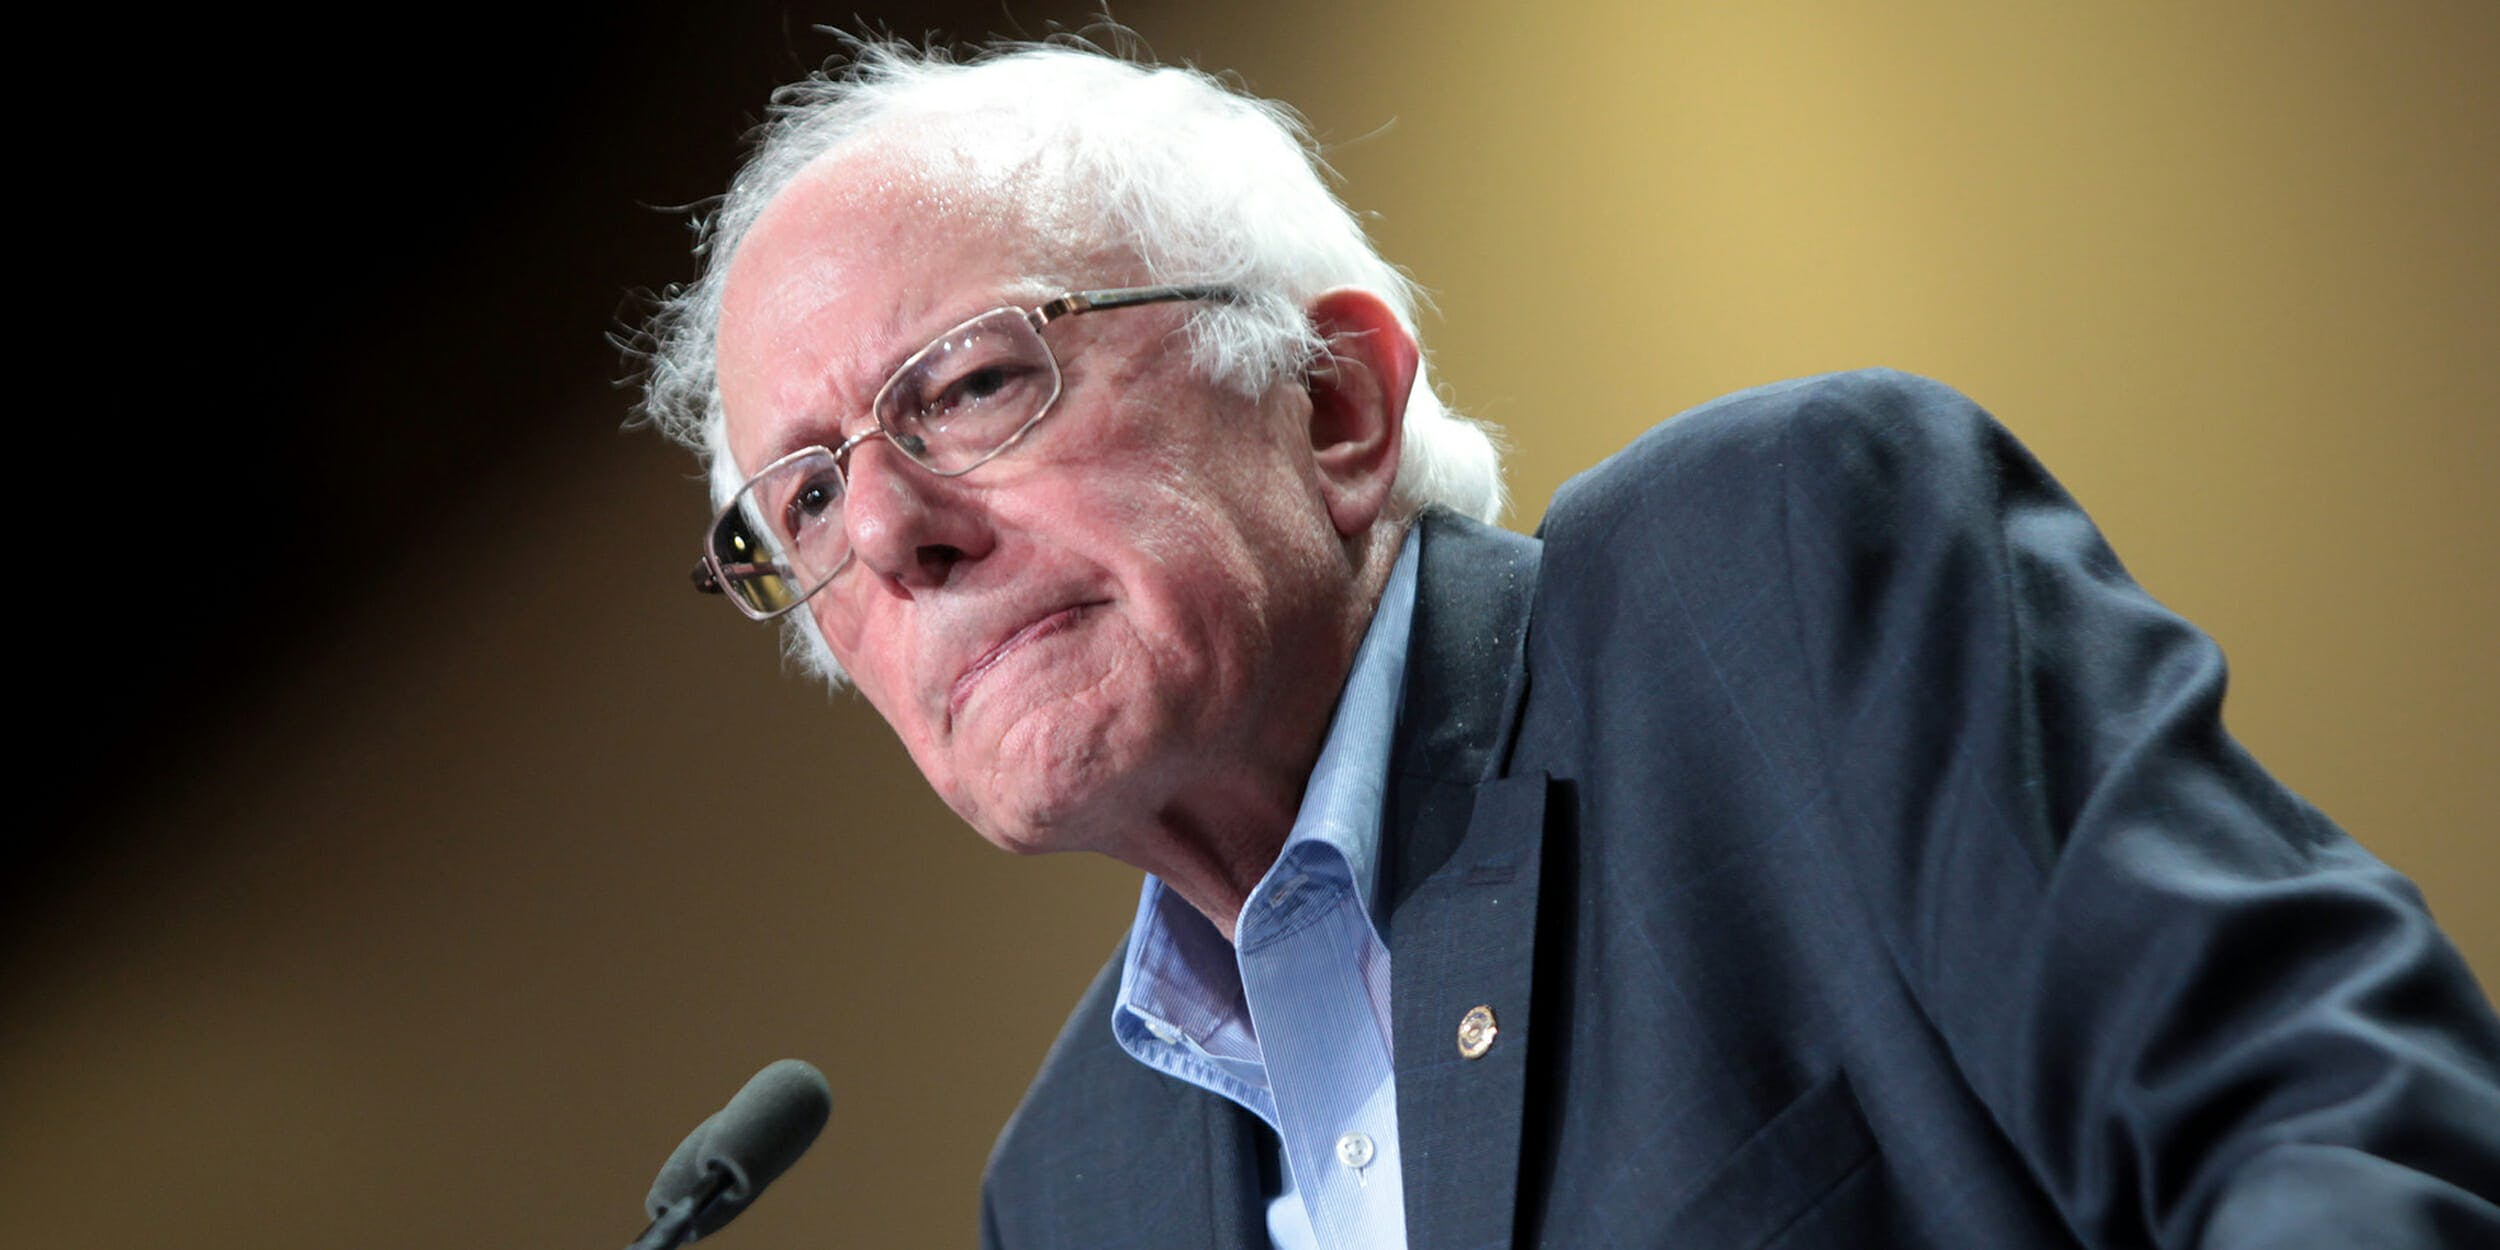 Bernie Sanders is unveiling a single-payer healthcare bill on Wednesday.